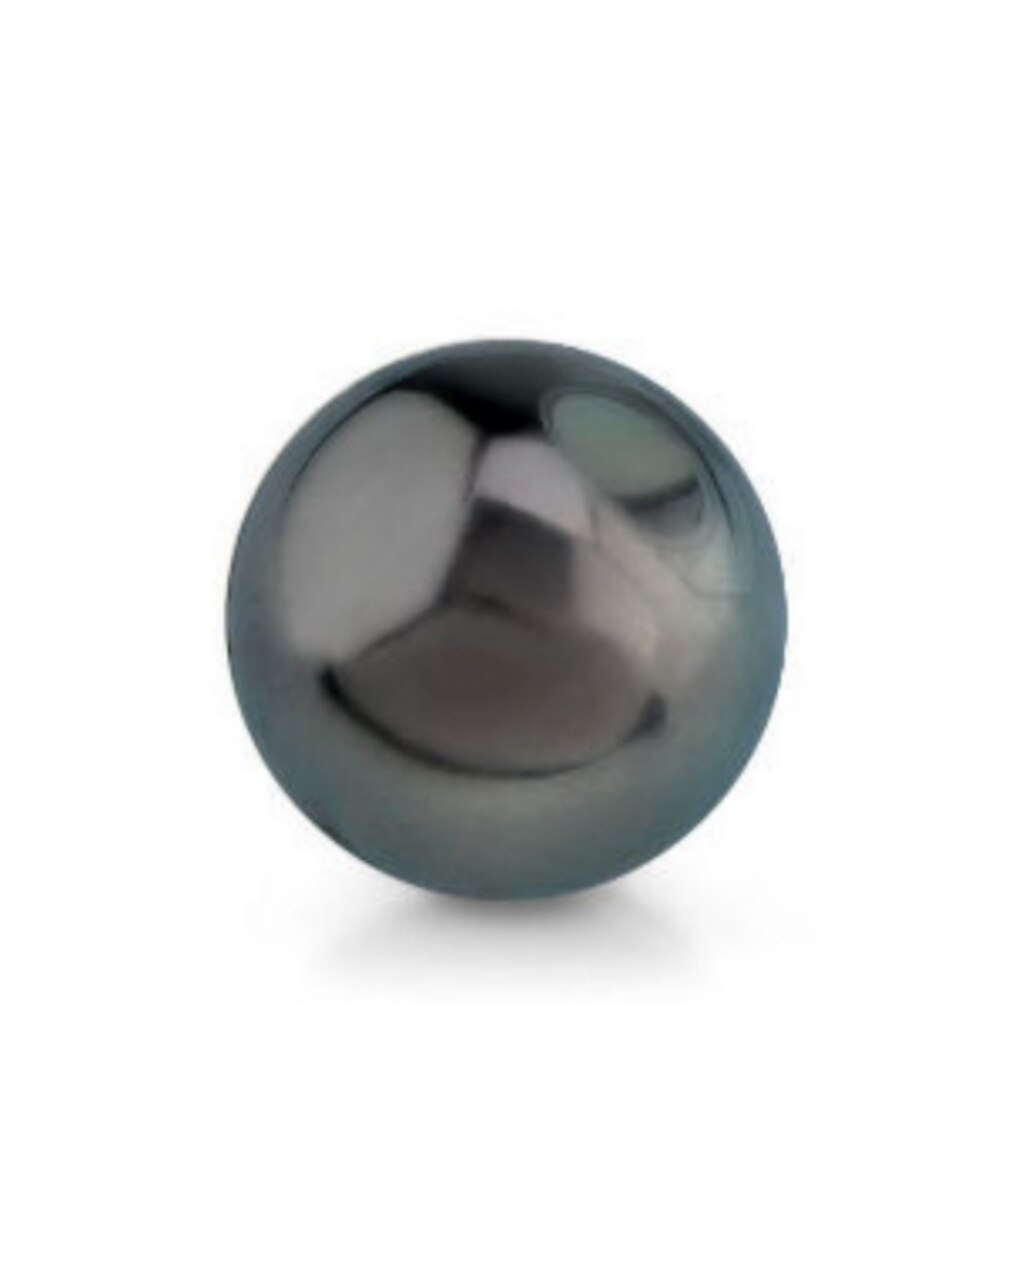 This loose Tahitian South Sea pearl is 11.0mm in size